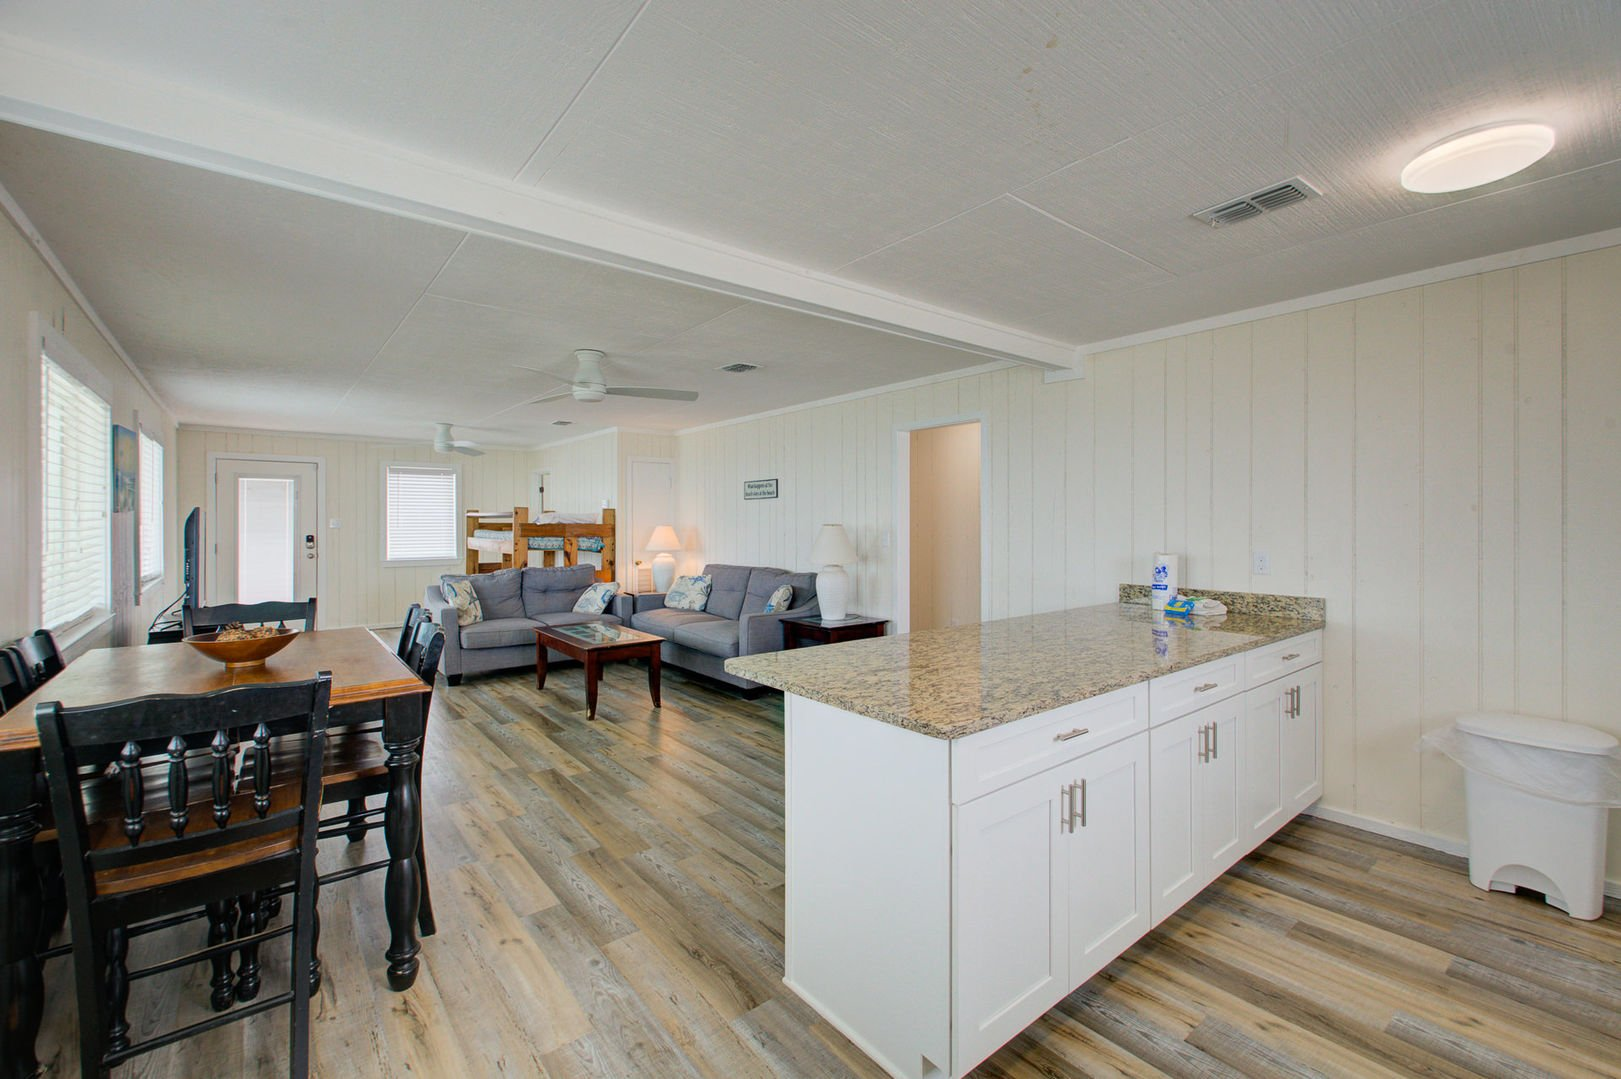 Open floor plan with living room and kitchen island